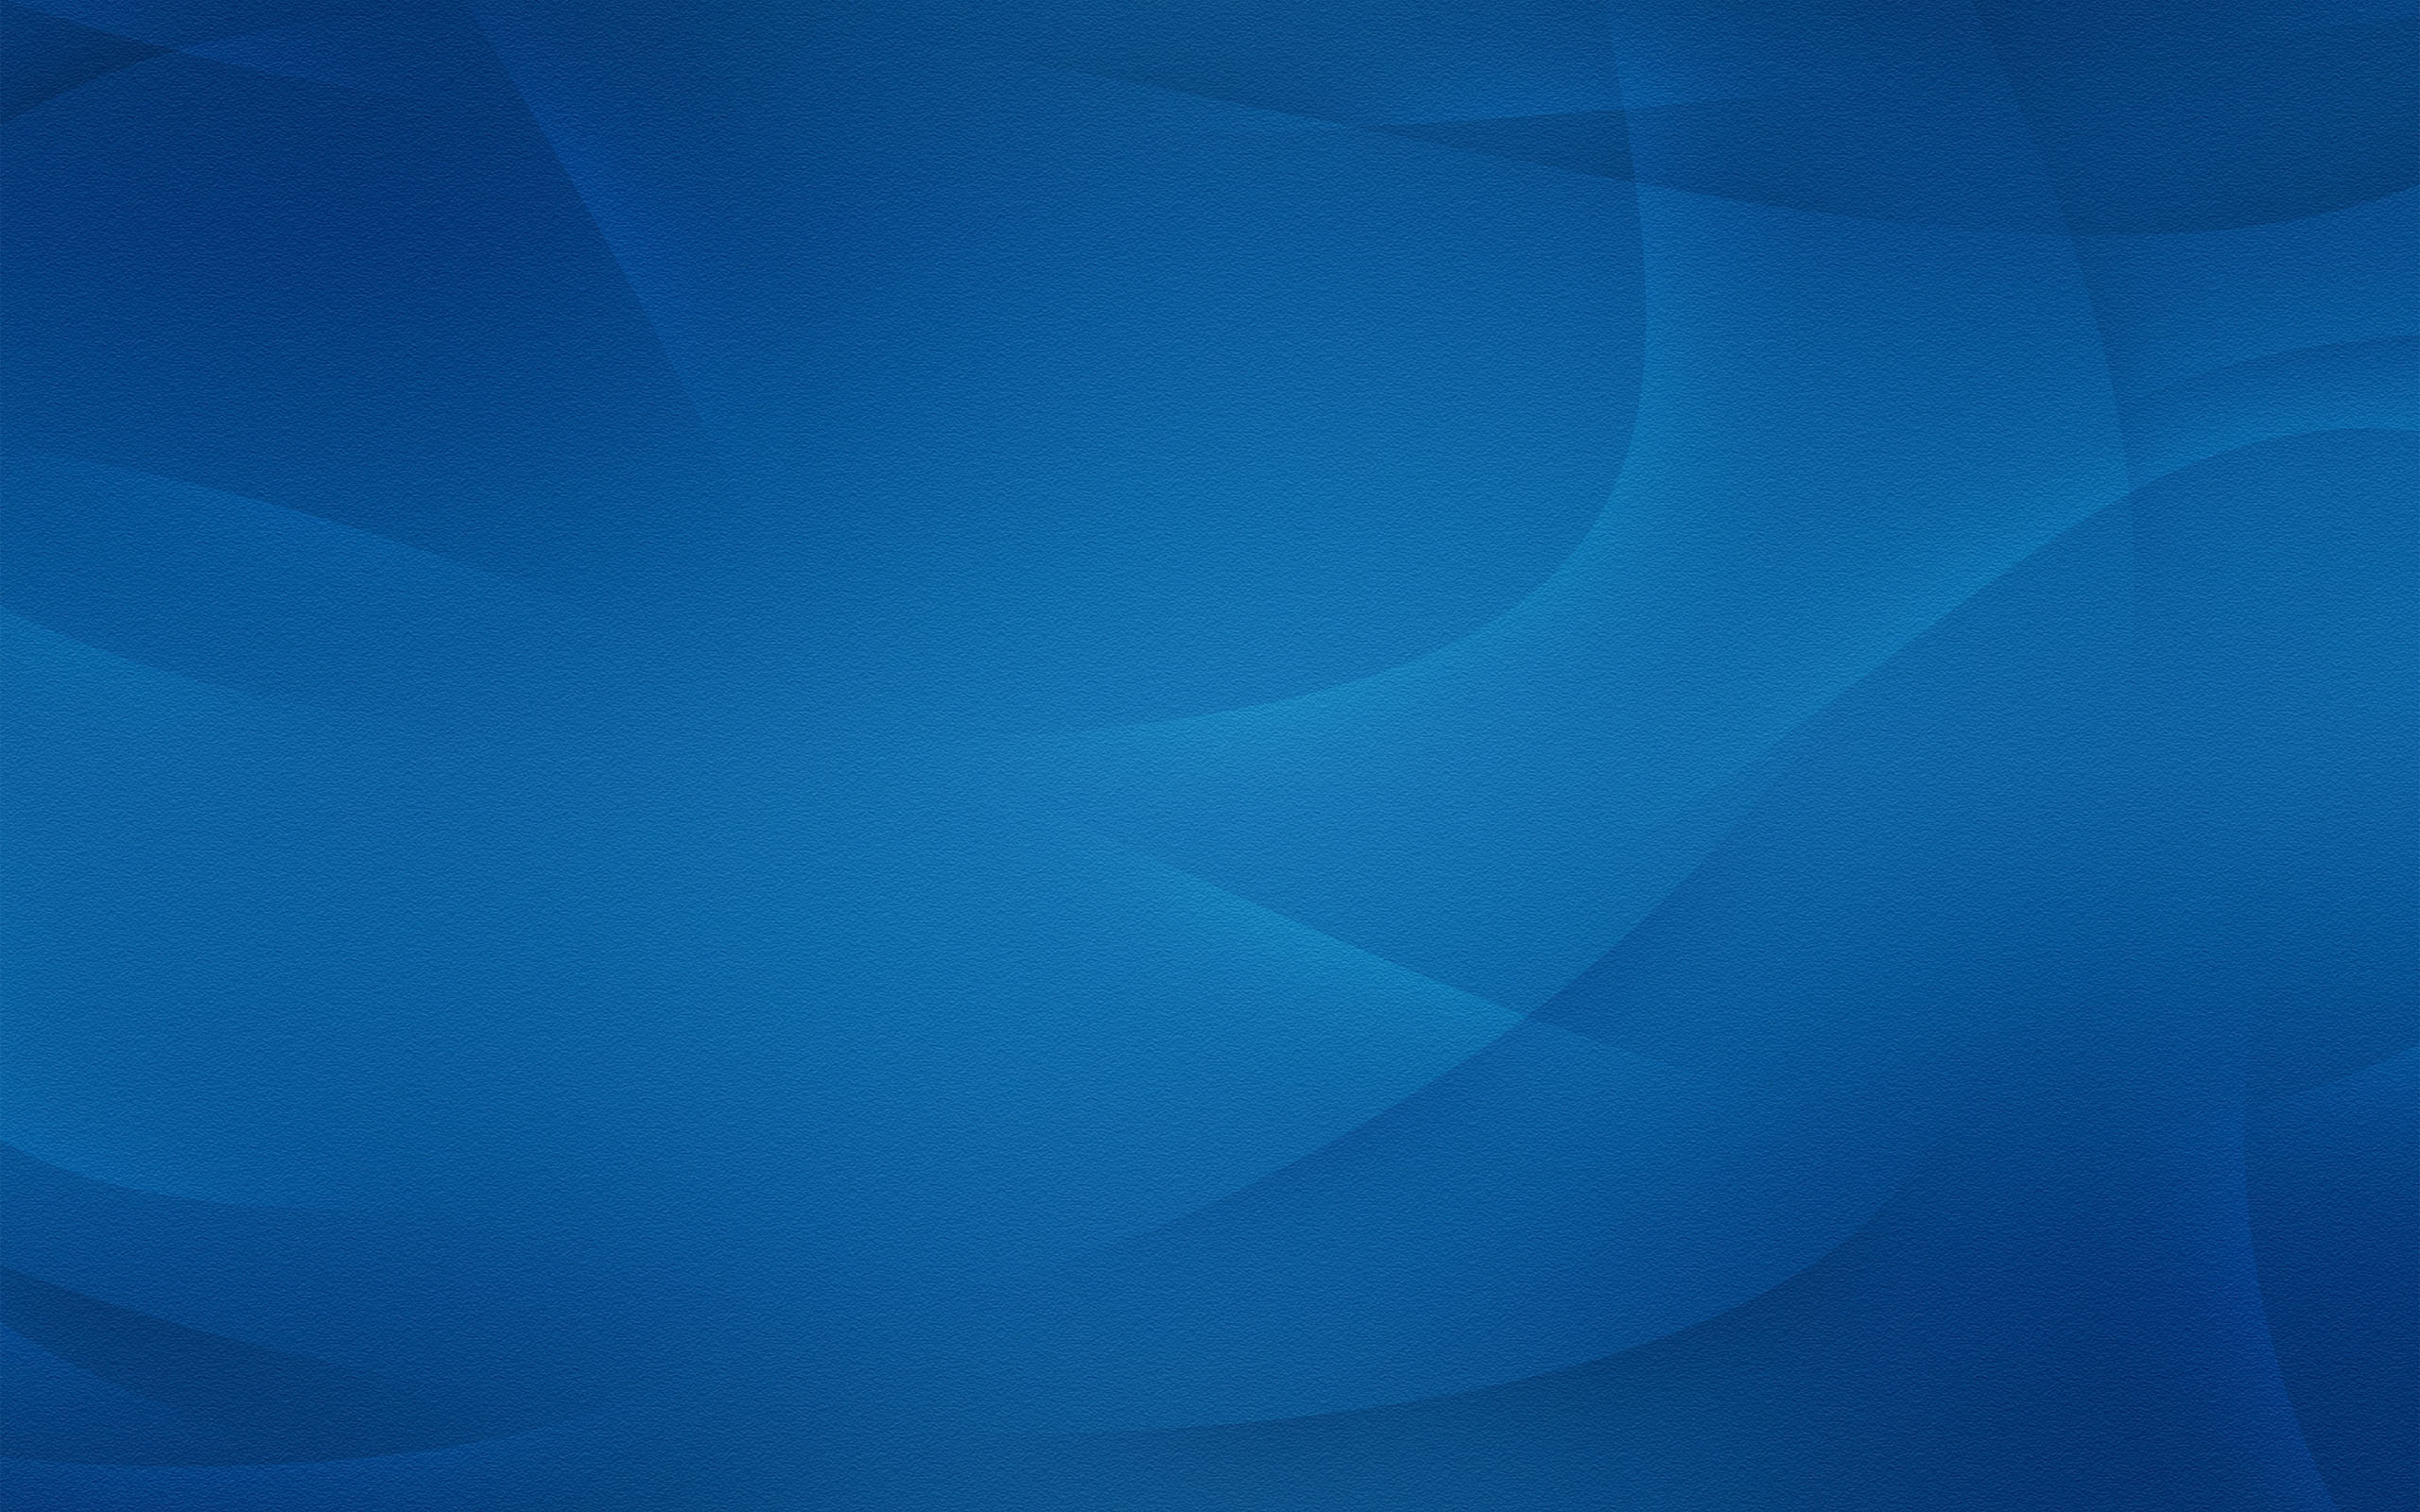 2560x1600 Blue Wallpaper 45841